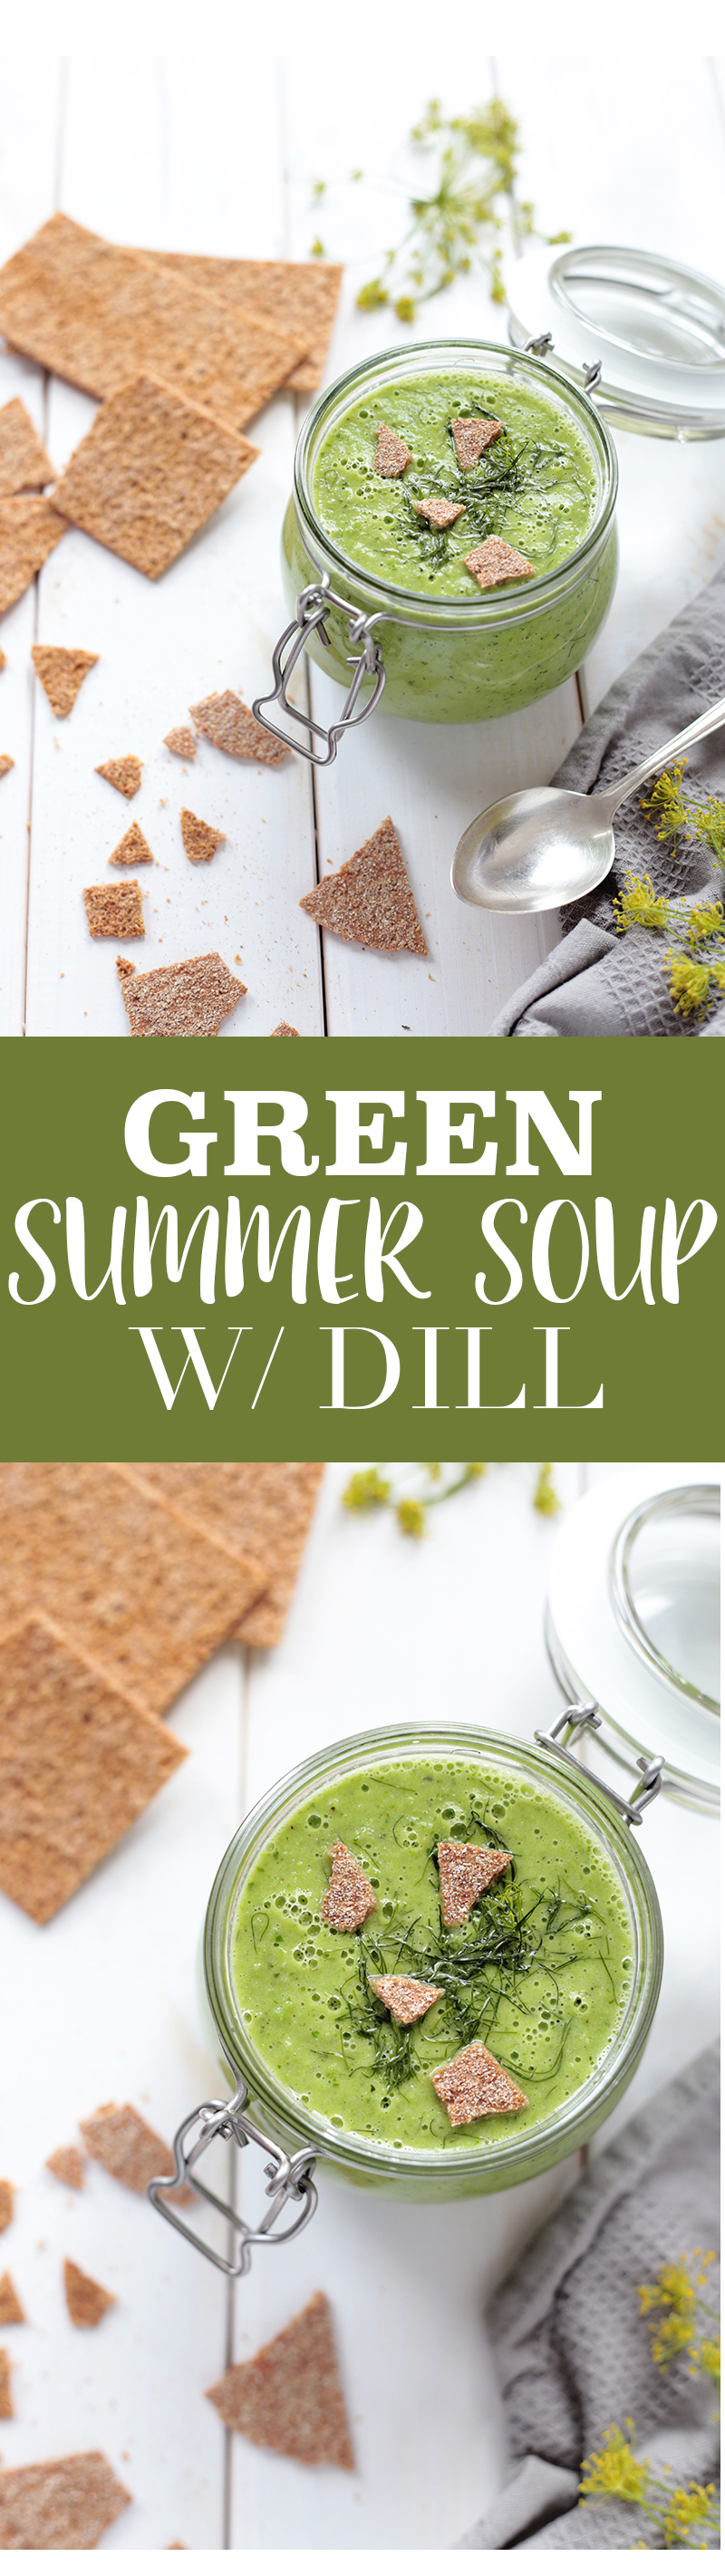 Green Summer Soup with Dill